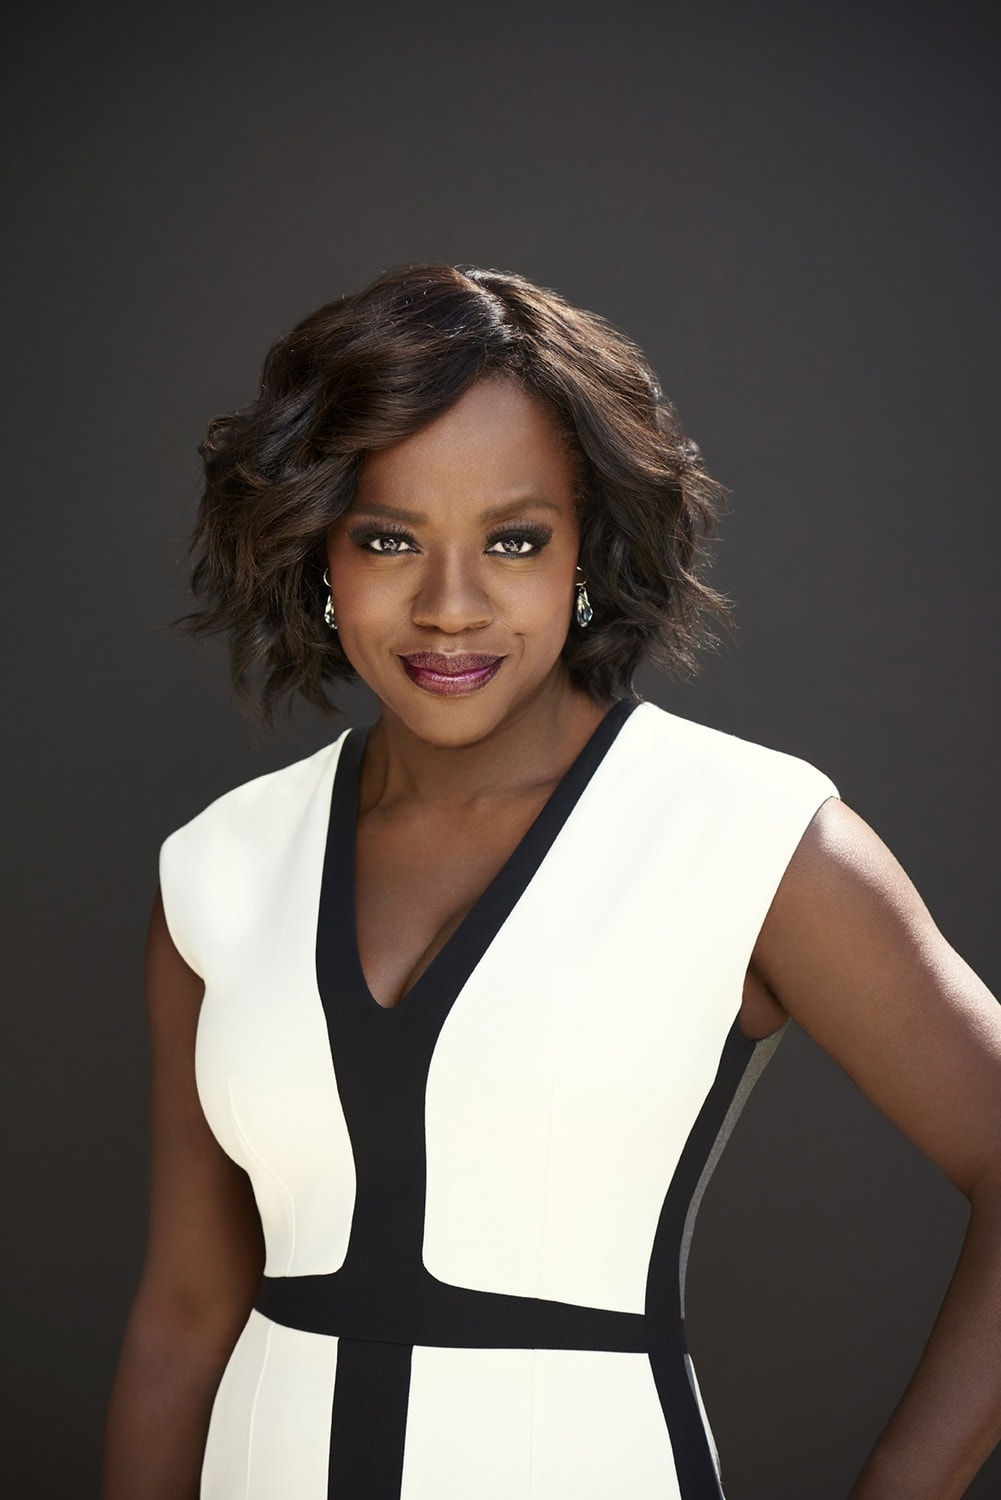 Producer and actor Viola Davis will be the Hasty Pudding Theatricals 2021 Woman of the Year.